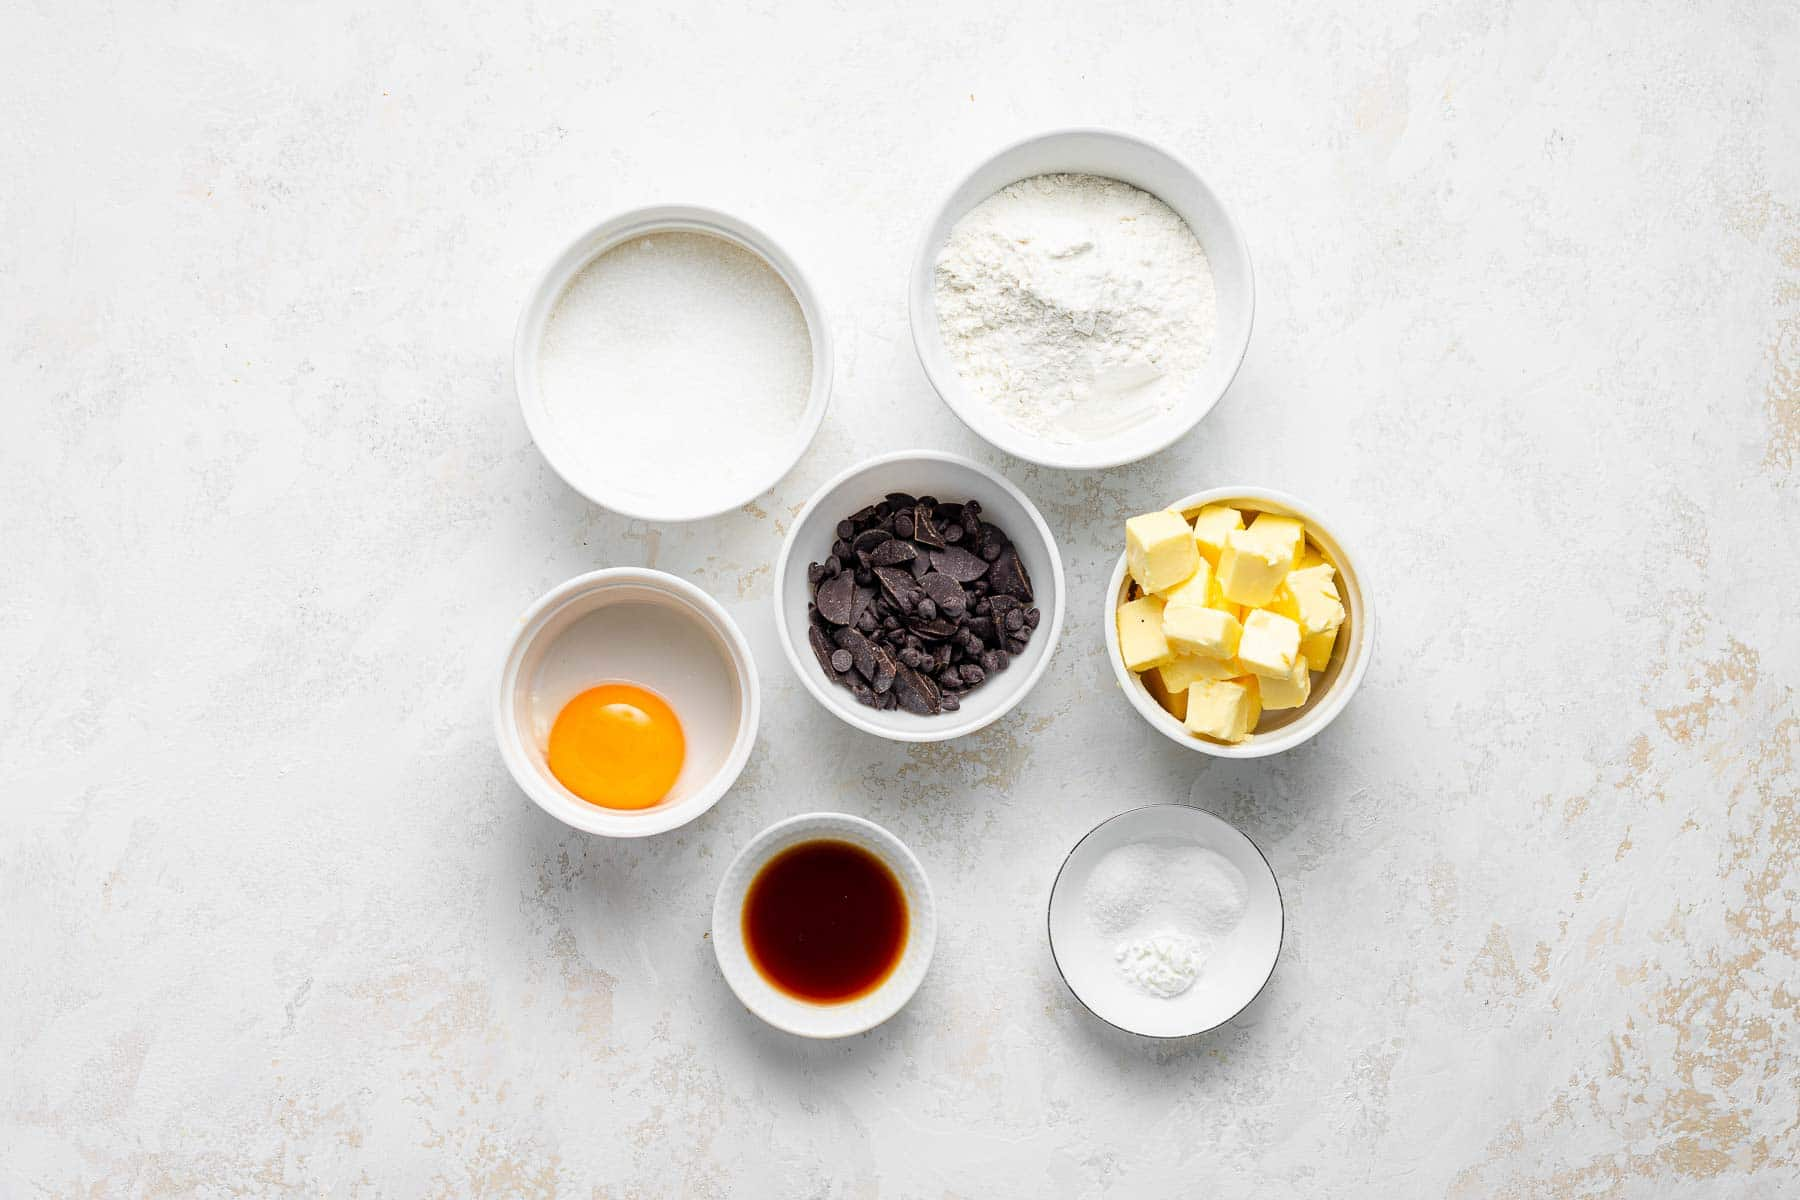 Ingredients for chocolate chip cookies without brown sugar on a white table.